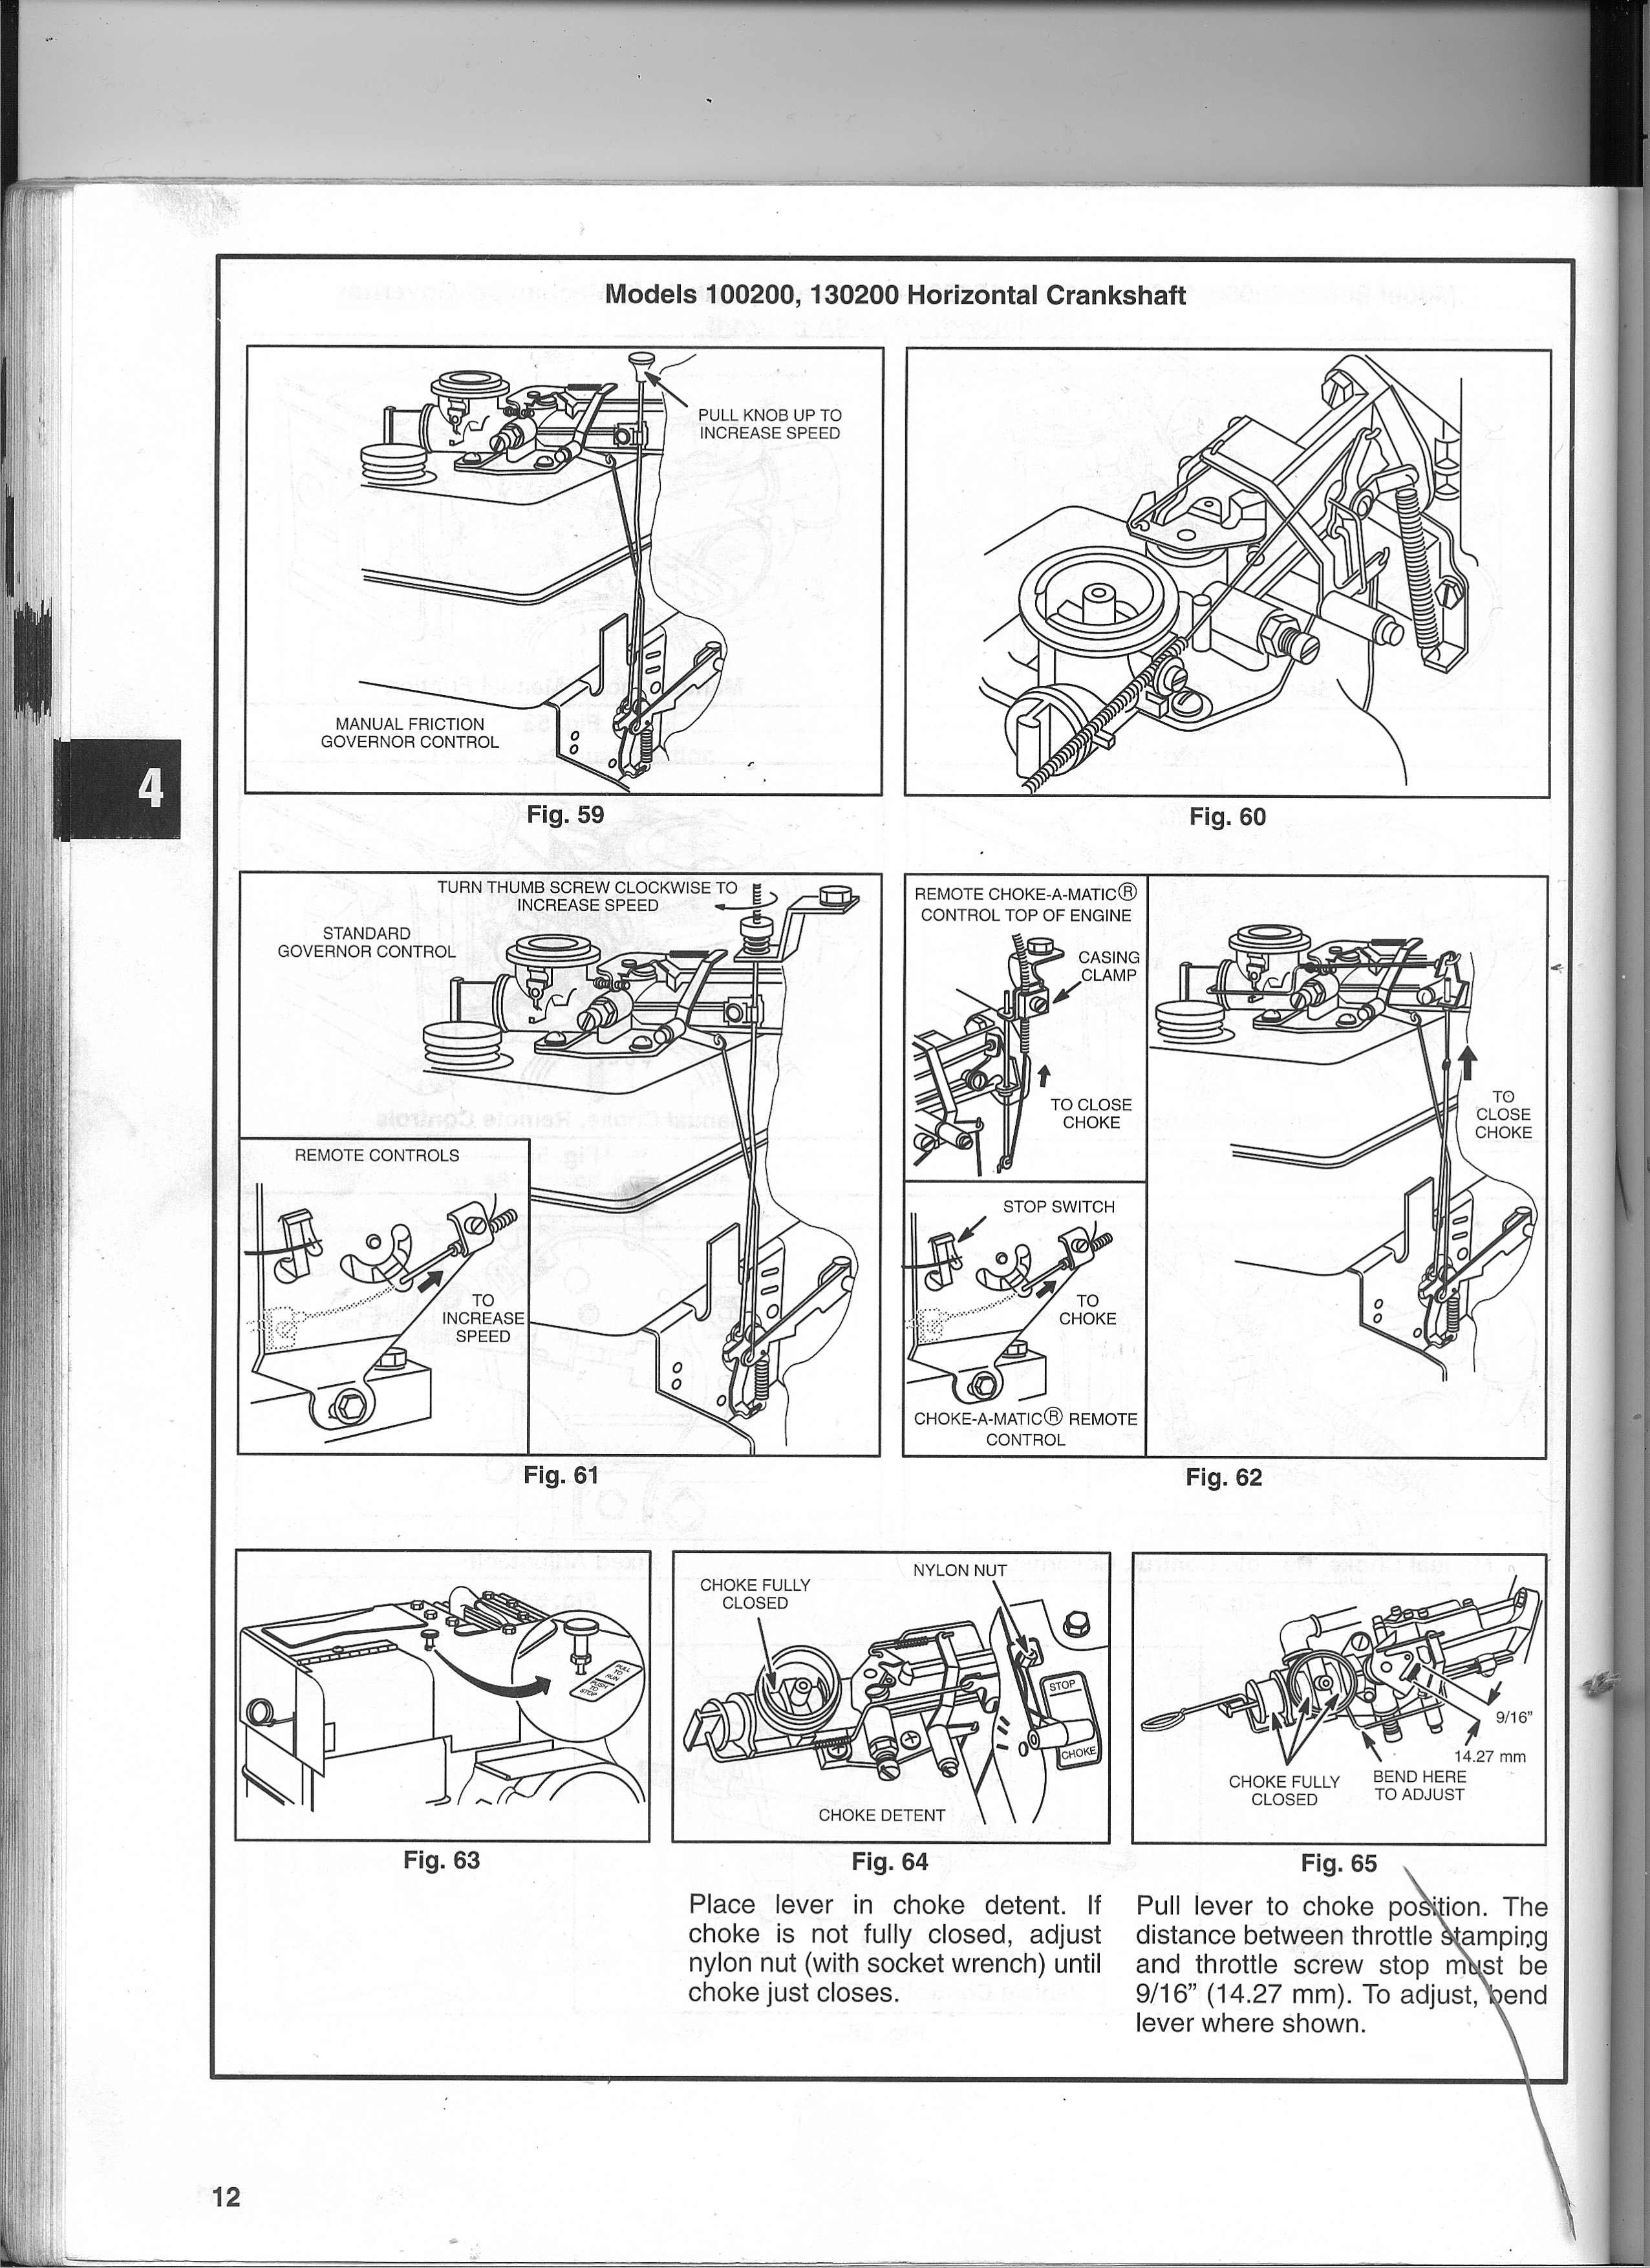 2010 01 31_005430_briggs_5hp_linkage_2 briggs stratton 16 hp tractor wiring diagram briggs free image  at edmiracle.co